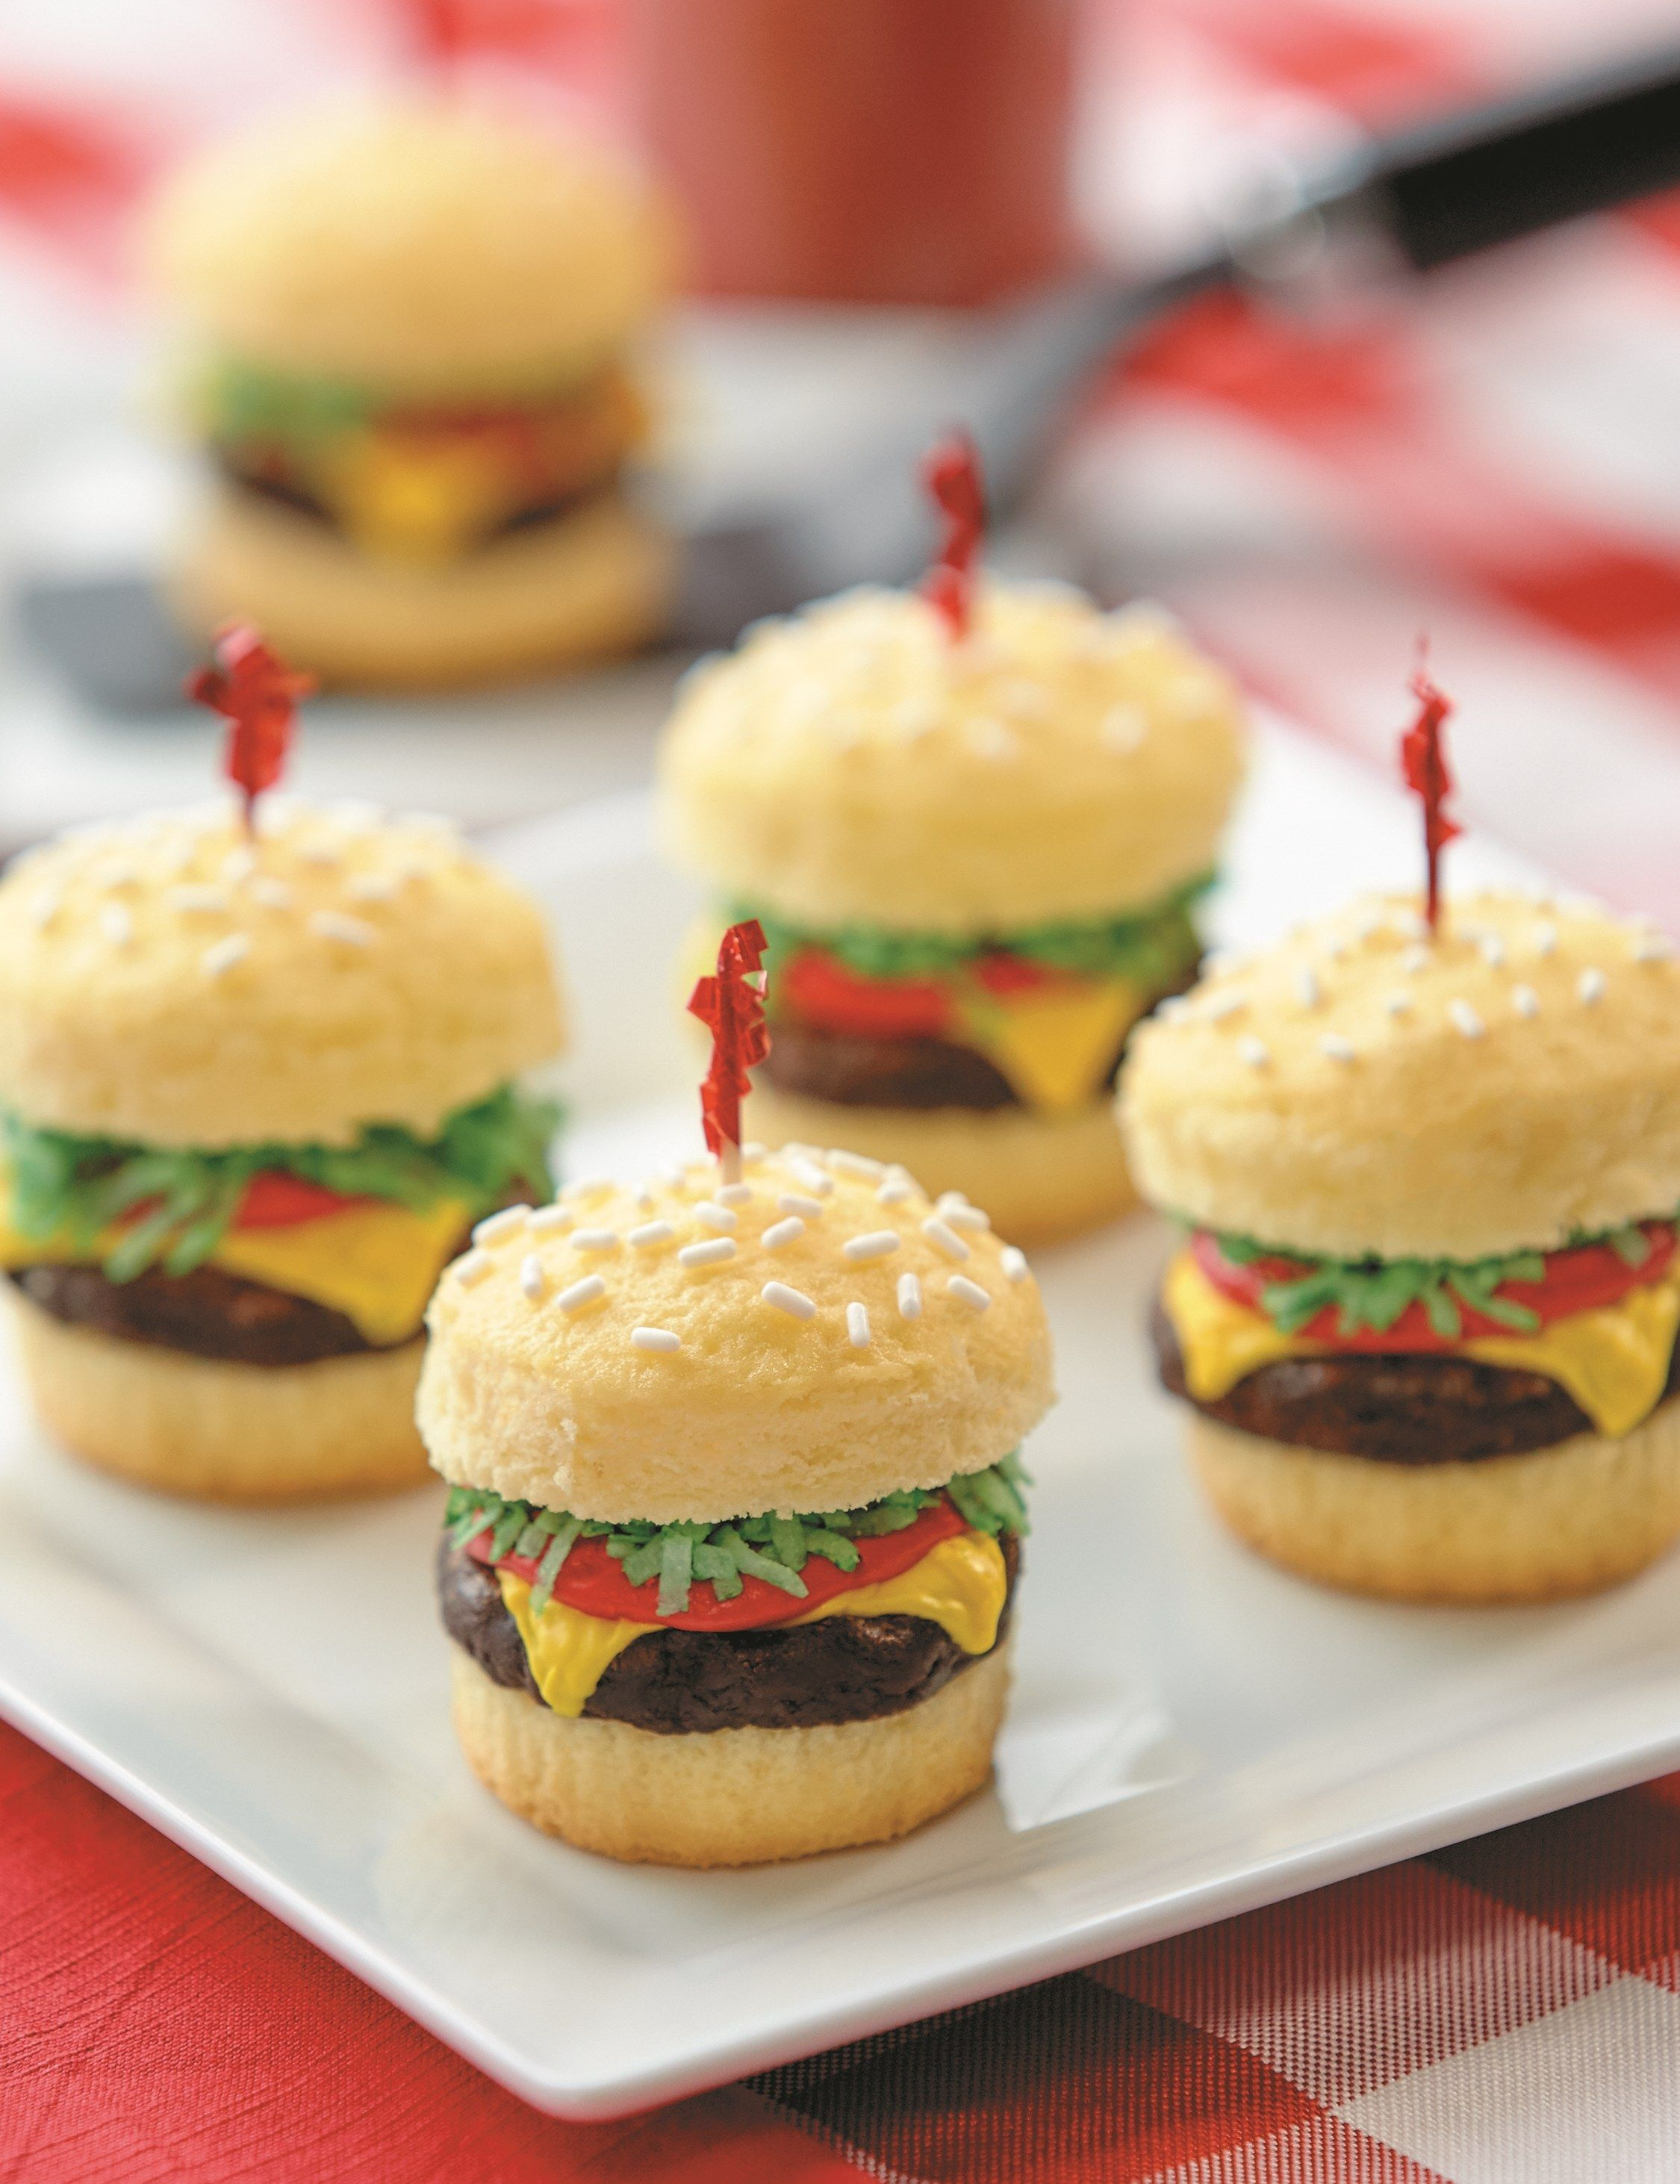 Cheeseburger cupcakes are a thing and we have the full